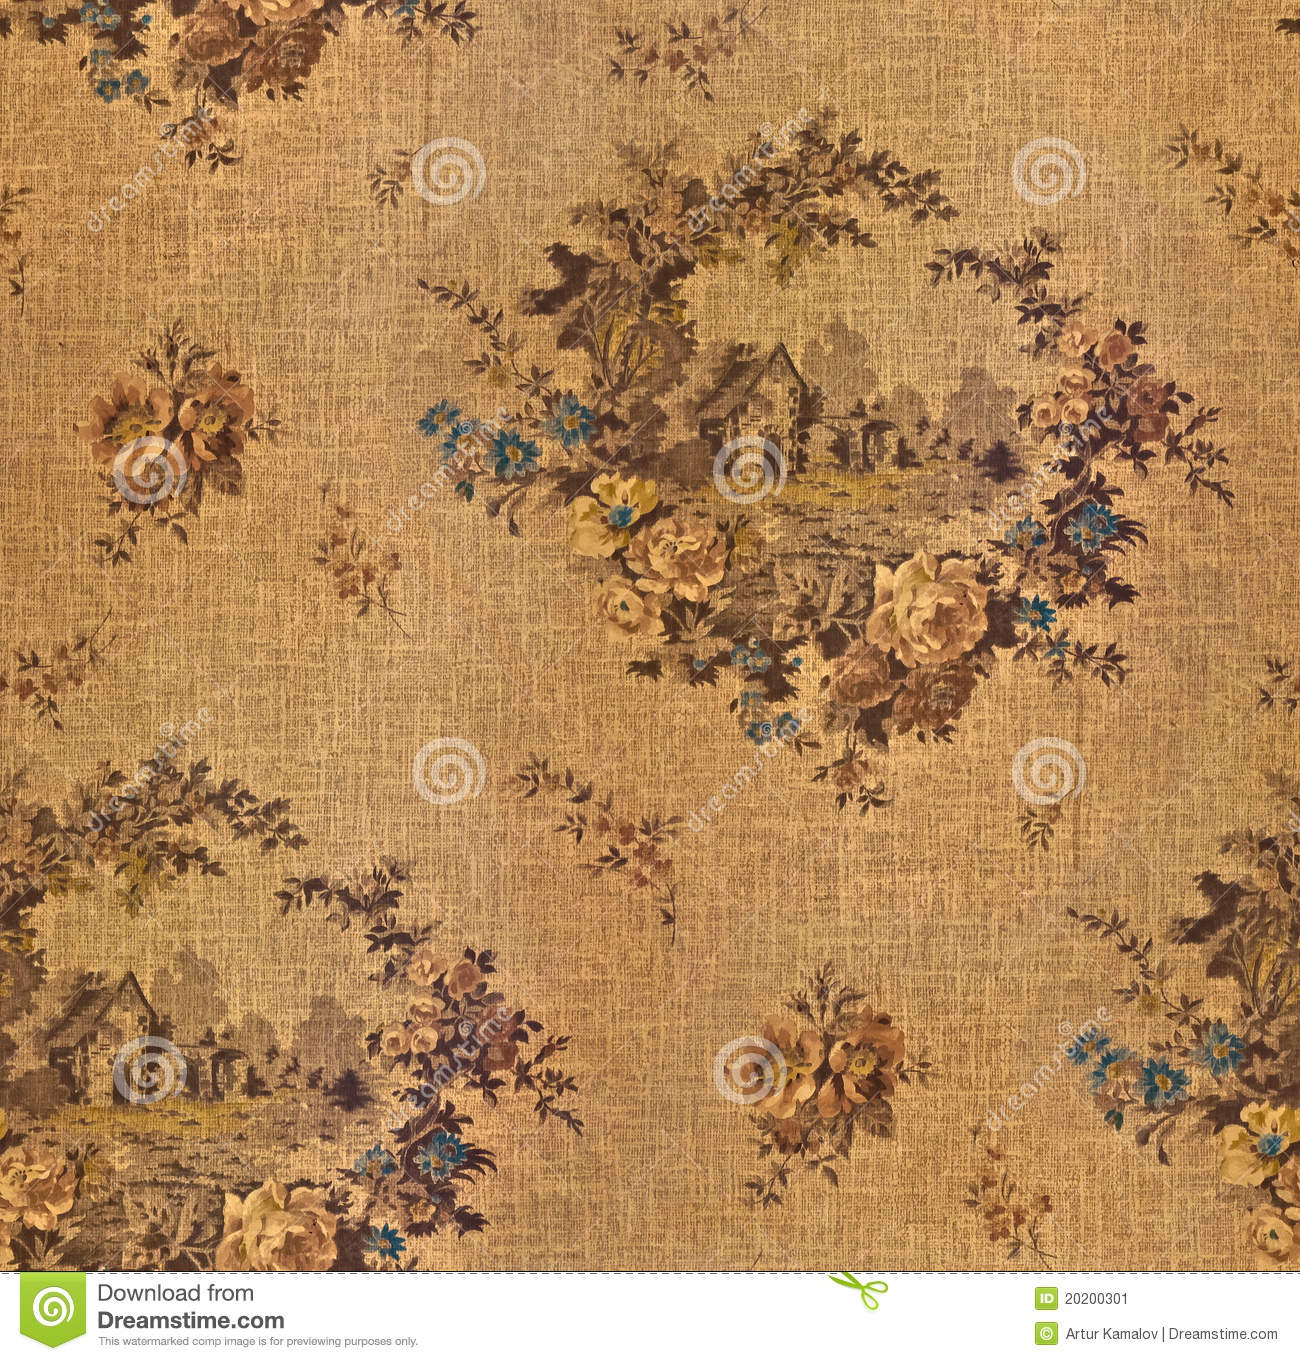 Old Wallpaper Seamless Texture Stock Image Image of pattern